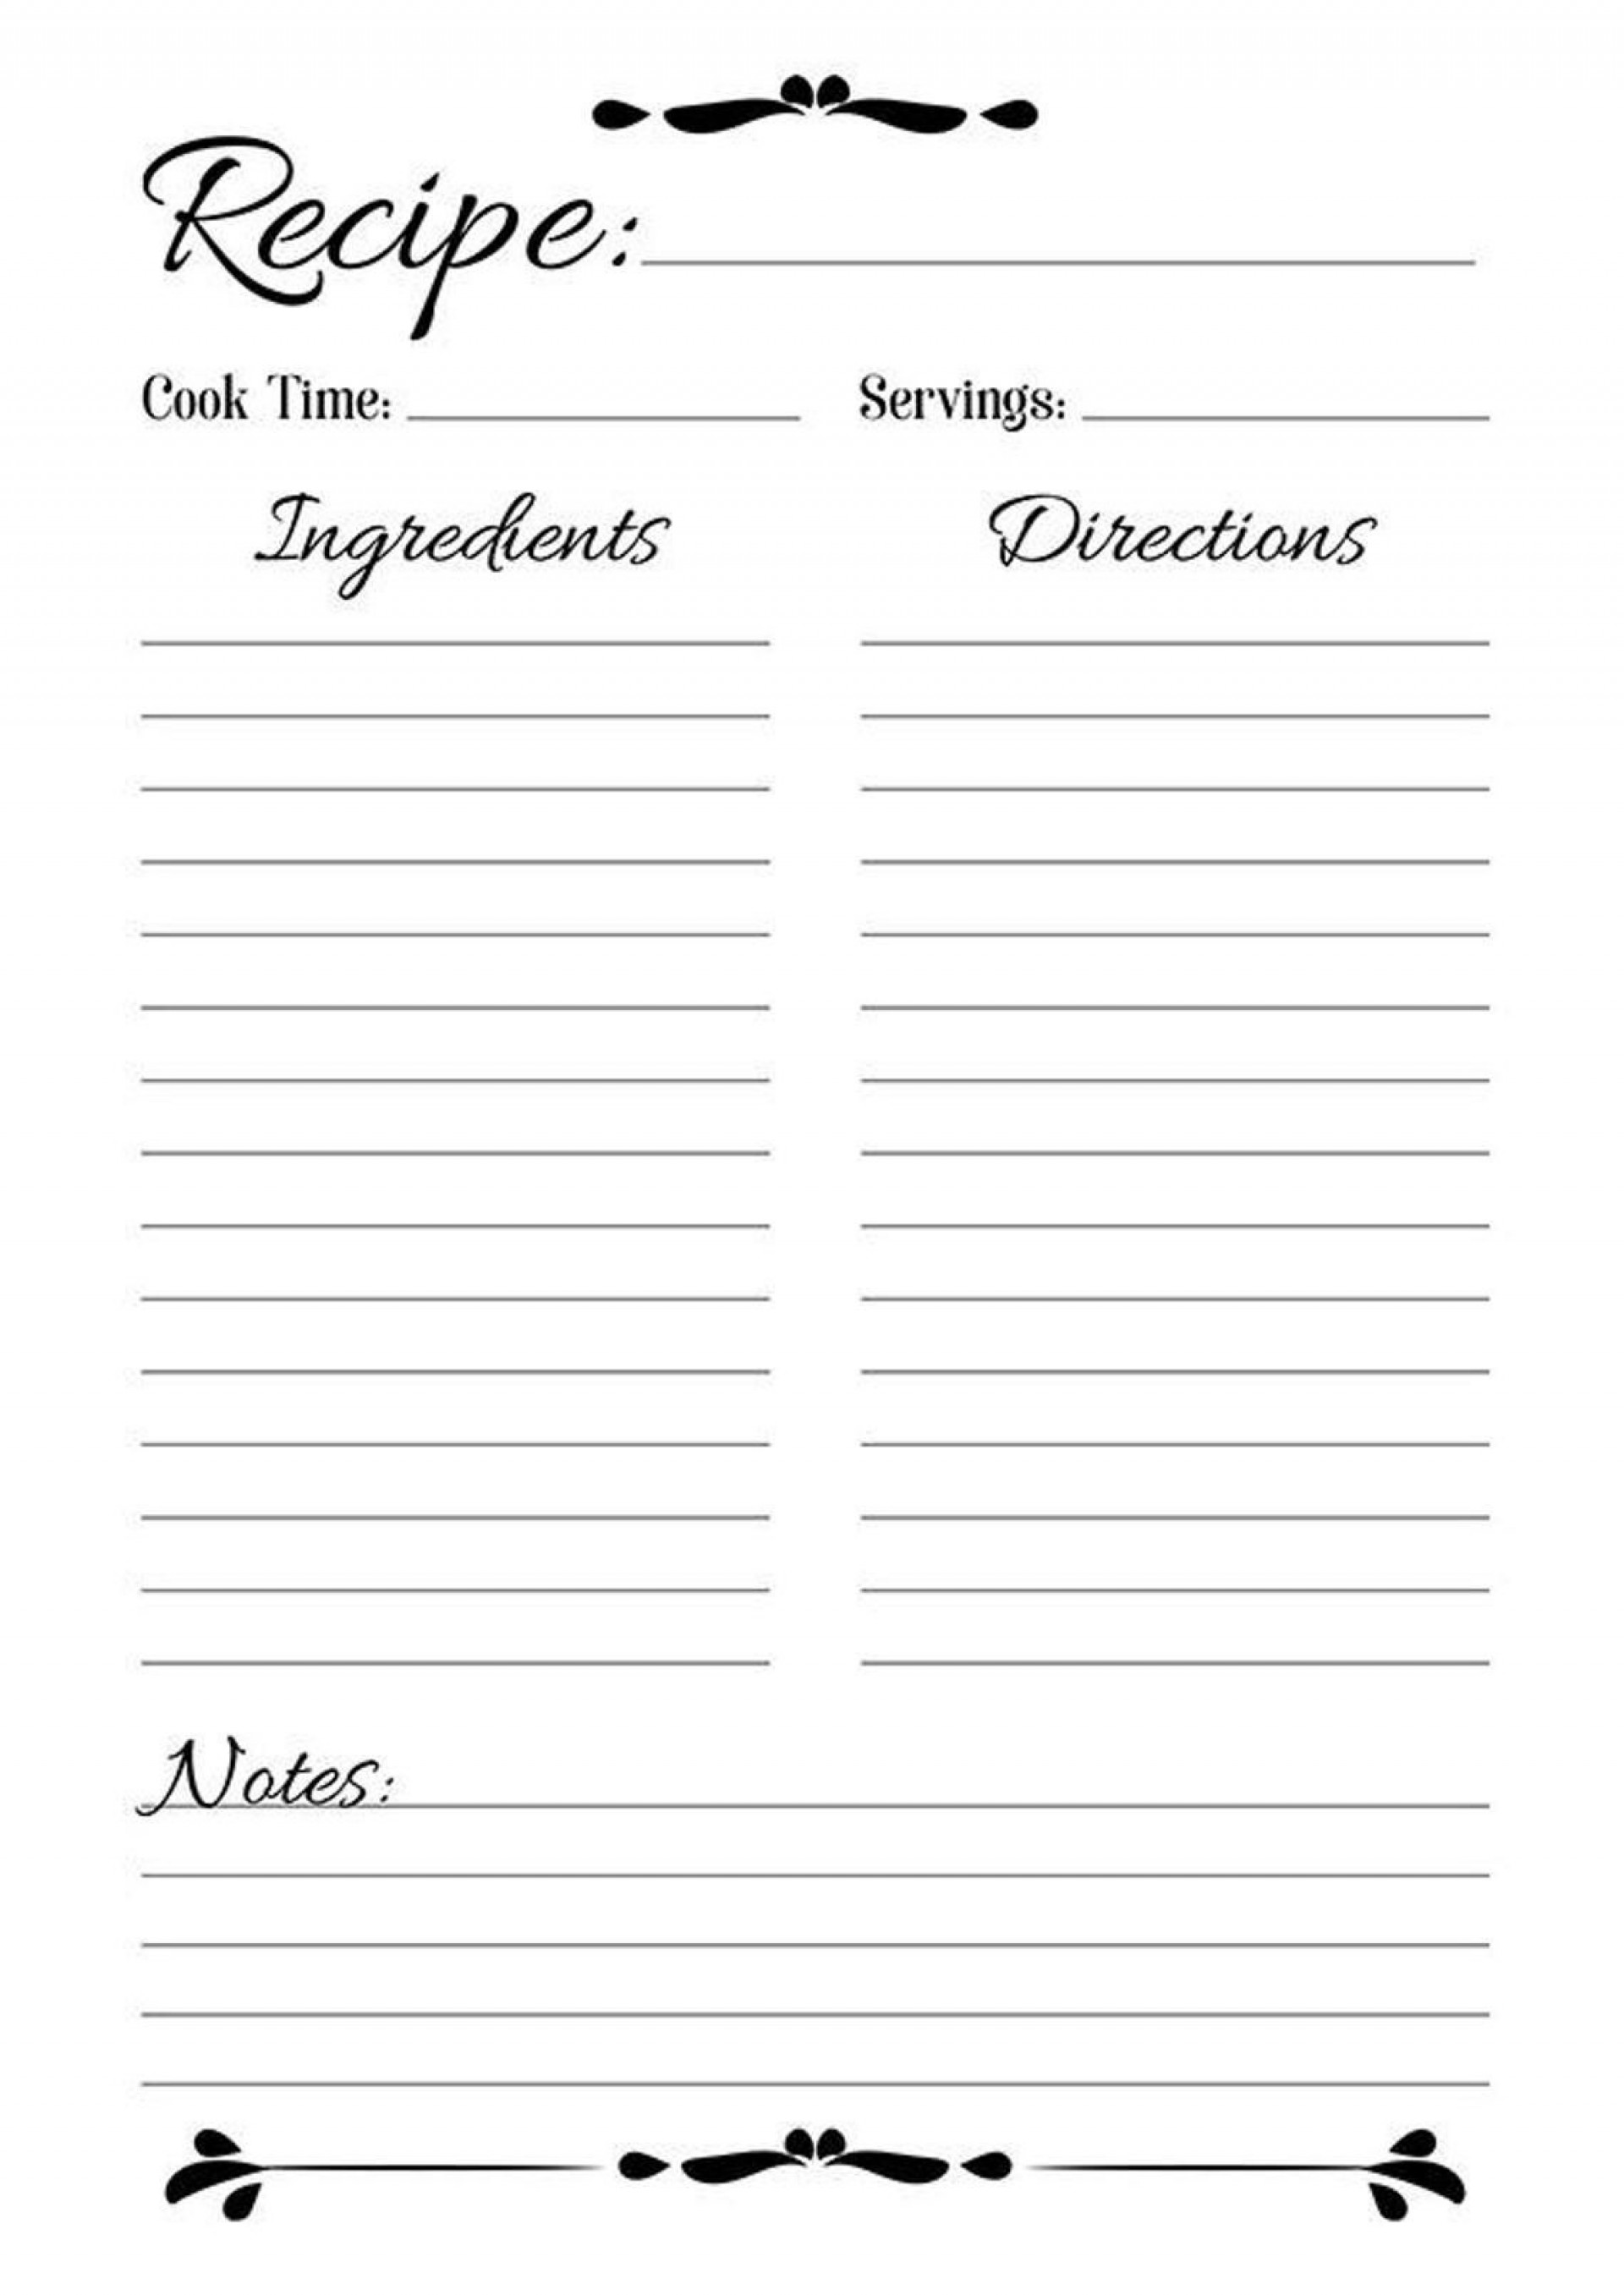 003 Breathtaking Full Page Recipe Template Highest Clarity  Card For Word Free Editable1920